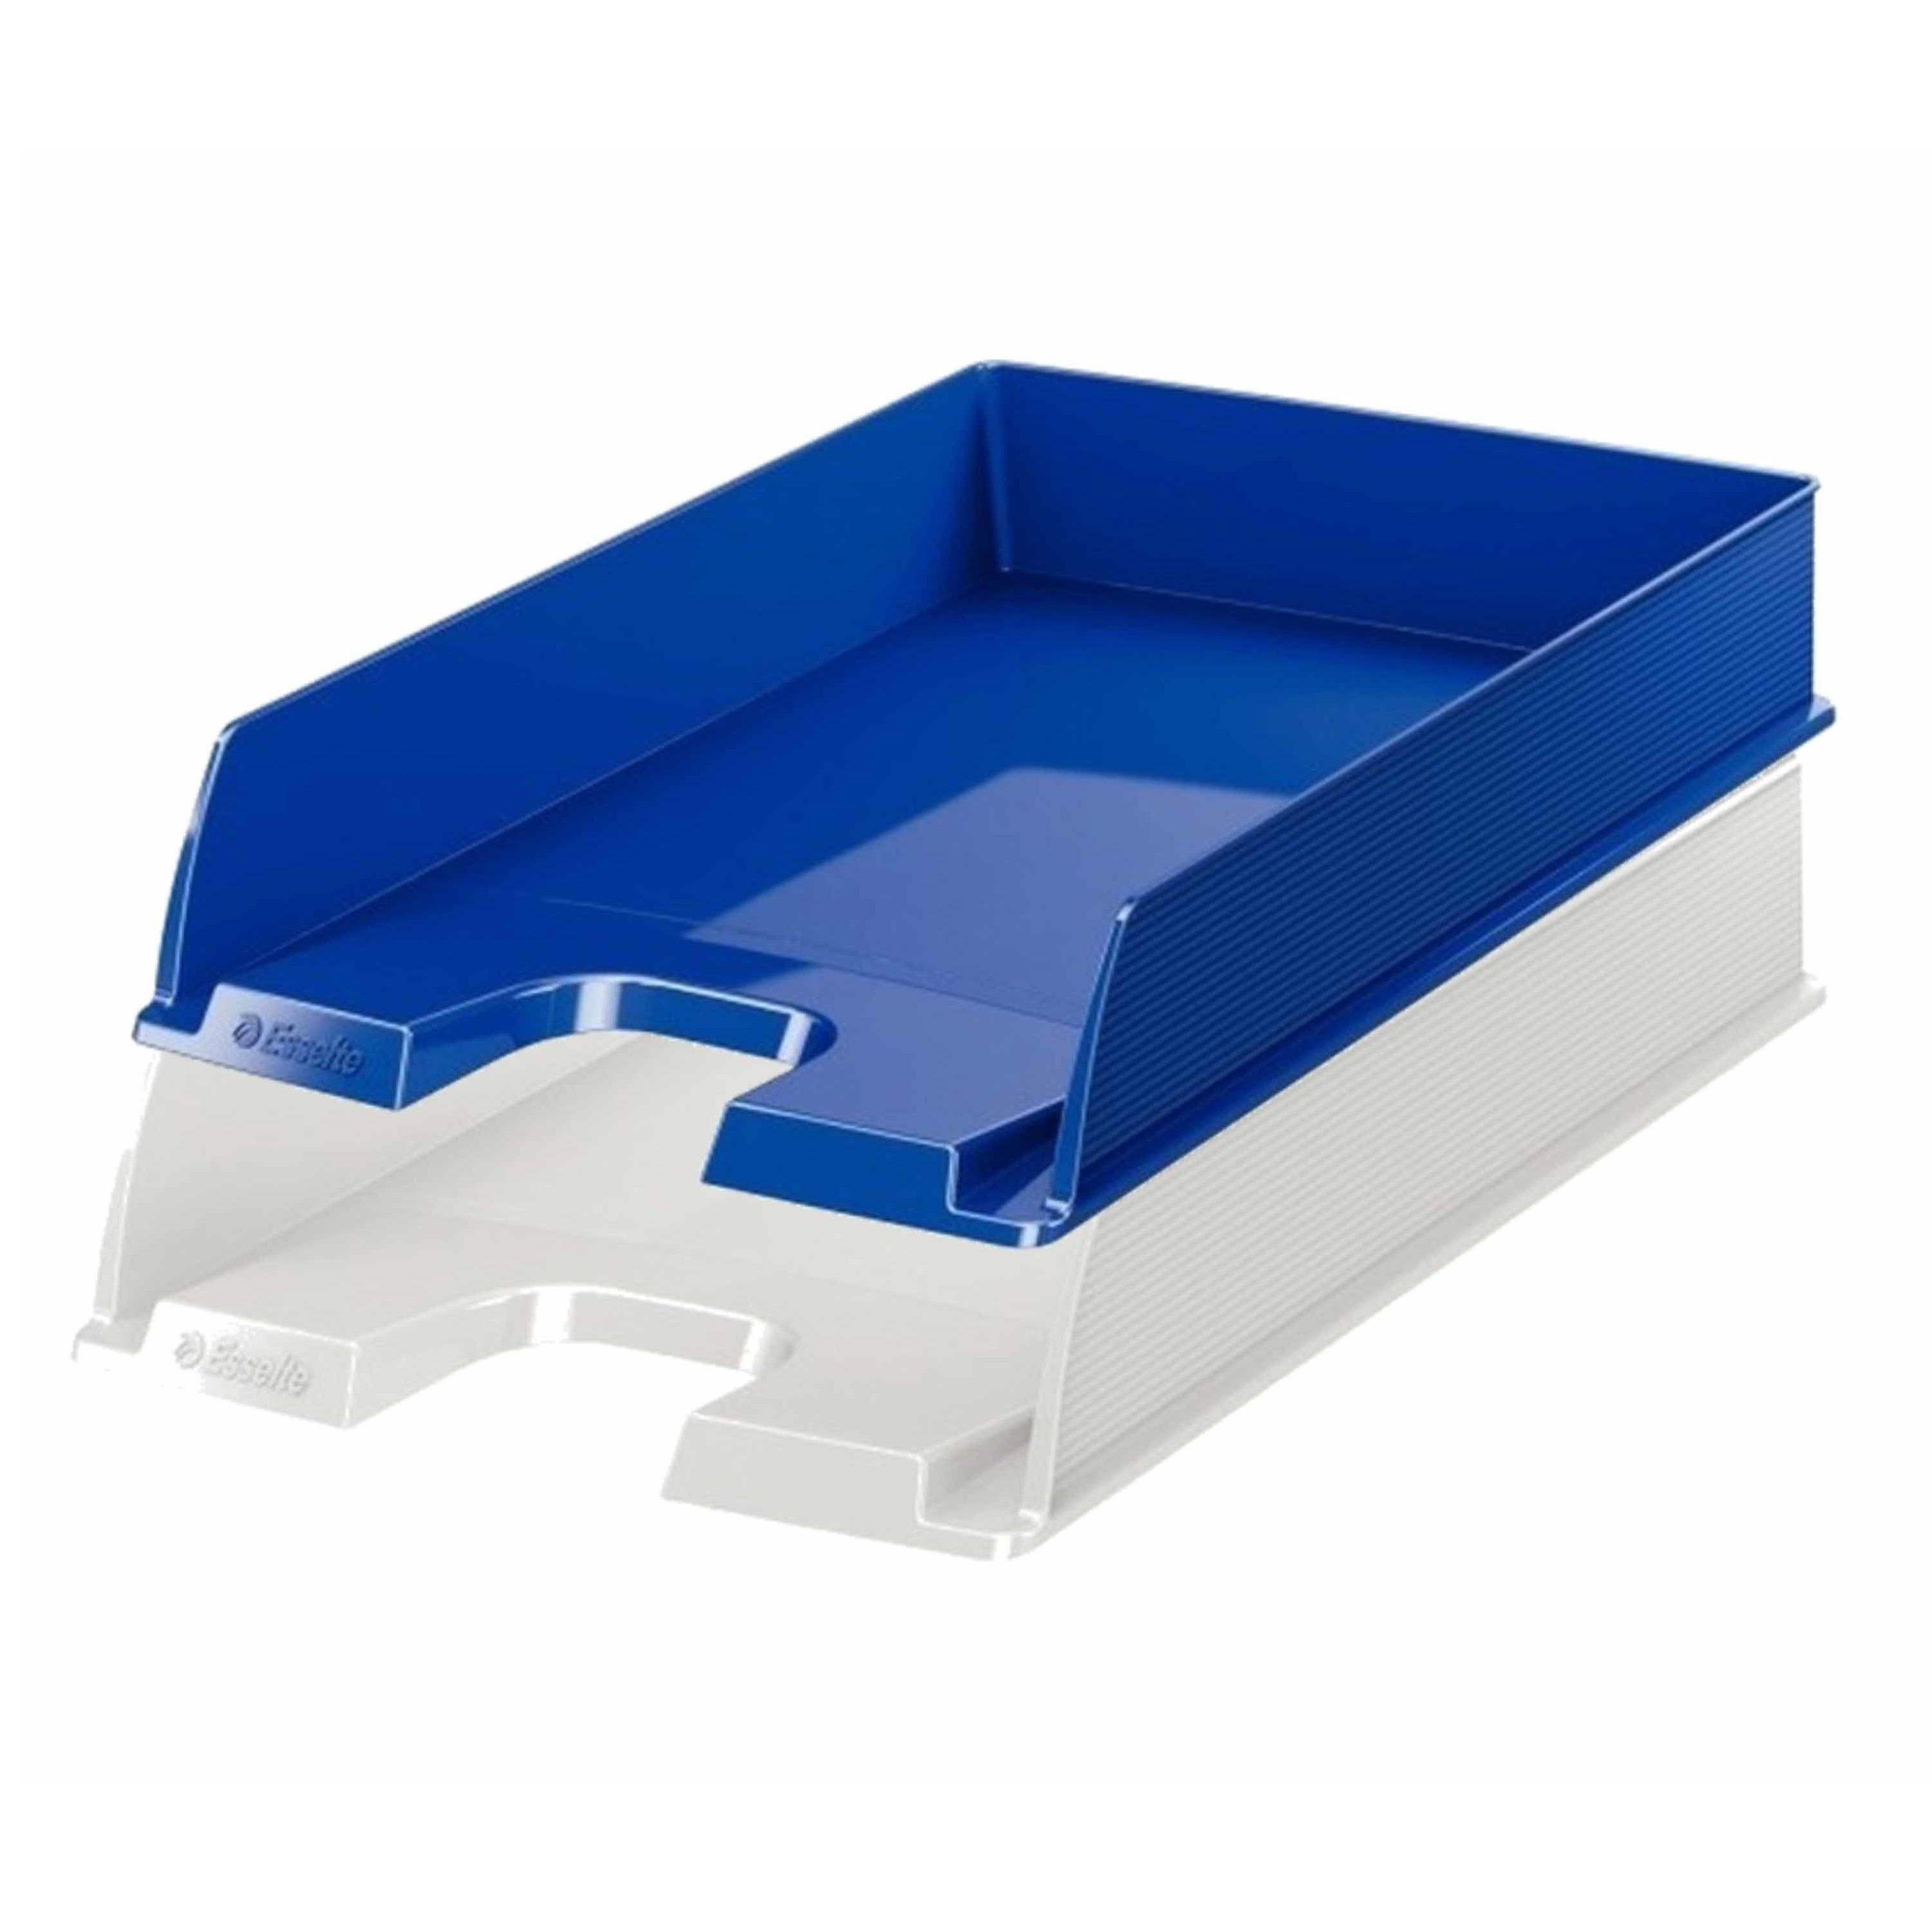 Esselte postbakjejes set van 2x blauw en 2x wit in a4 formaat